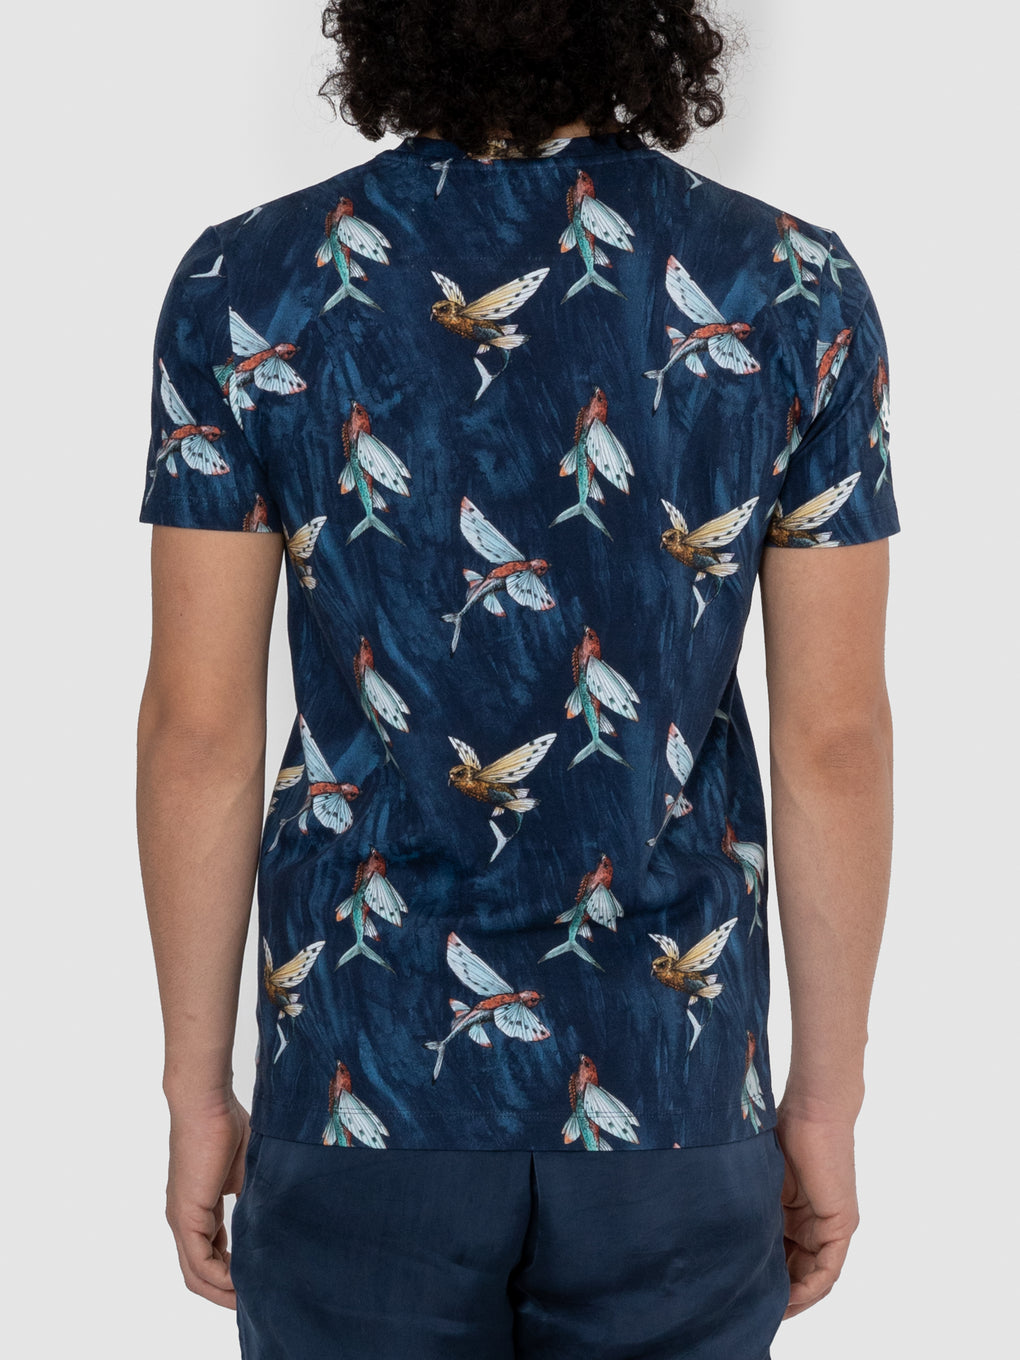 Flying Fish Tee